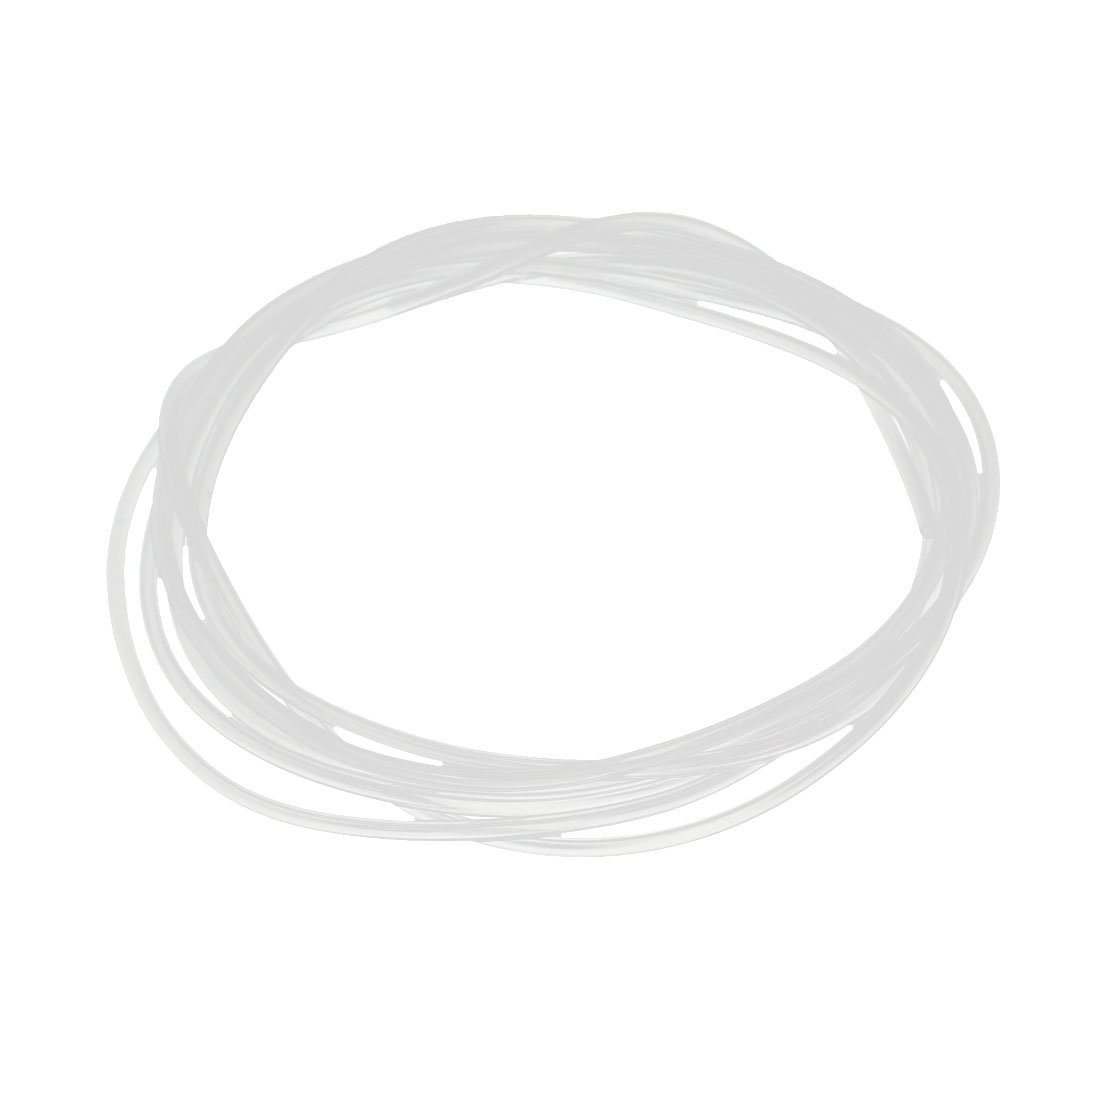 1mm x 2mm Silicone Translucent Tube Water Air Pump Hose Pipe 1.5 Meters Length